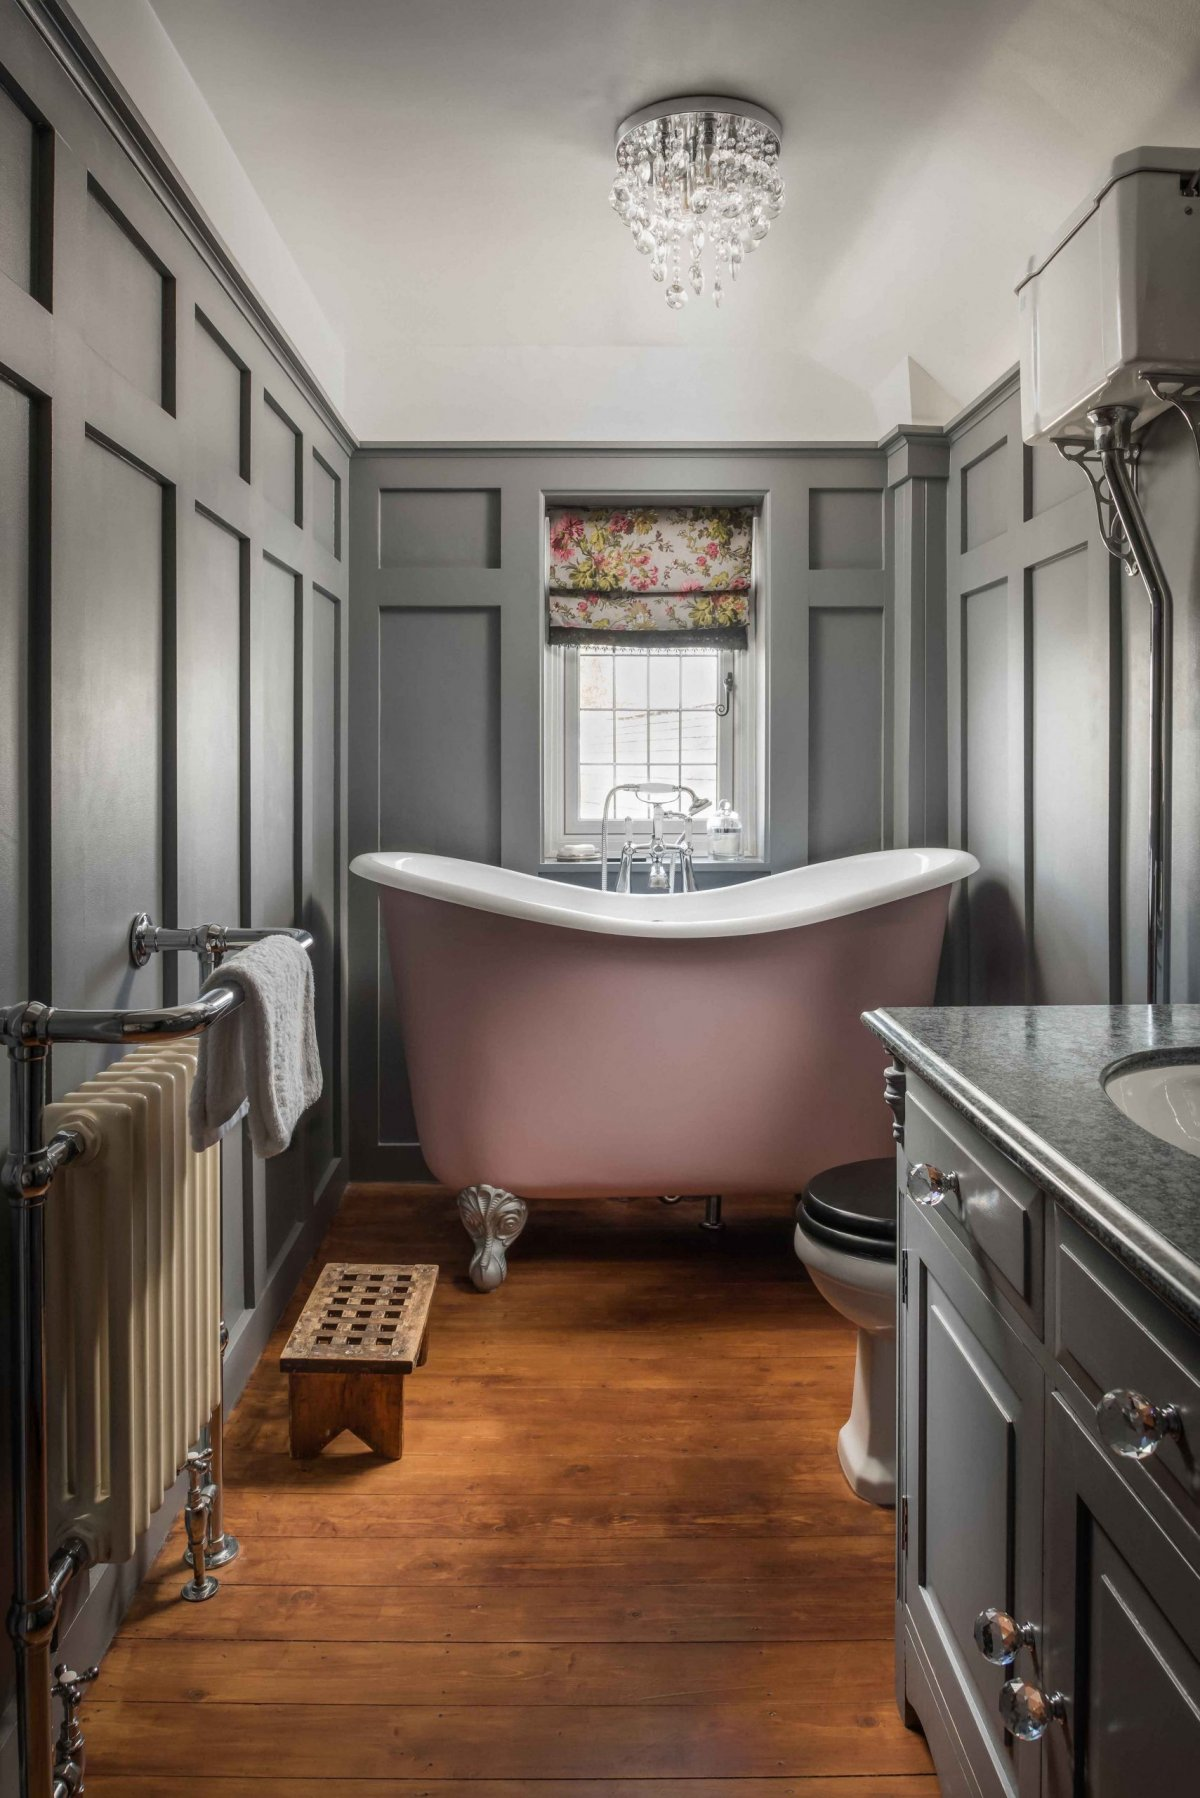 A pink tubby tub which is a higher height and can fit in a small room. Grey wainscoting in a traditional bathroom remodel